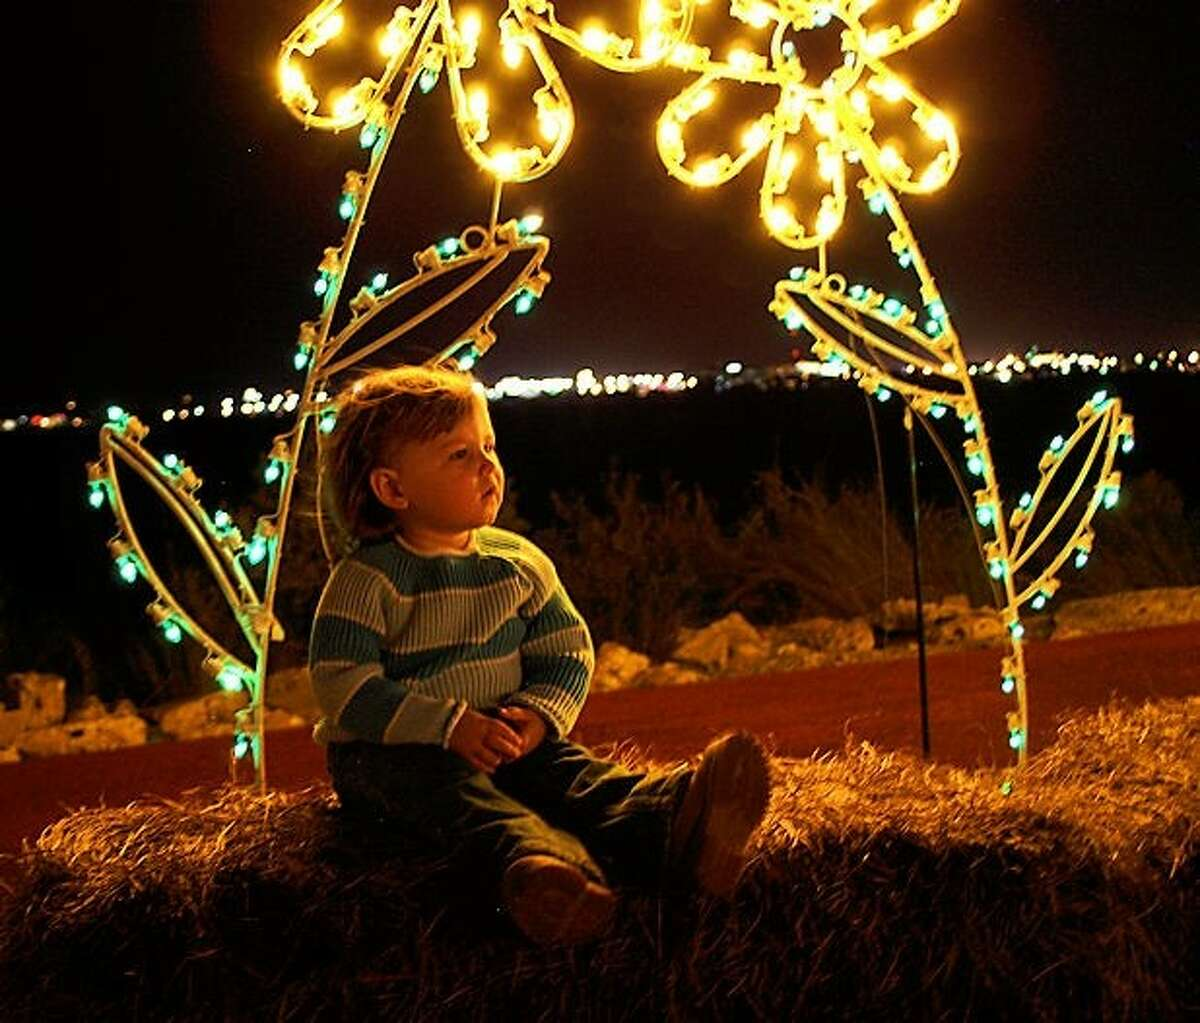 The Festival of Lights has joined Dicken on the Strand and other events as an annual holiday tradition.